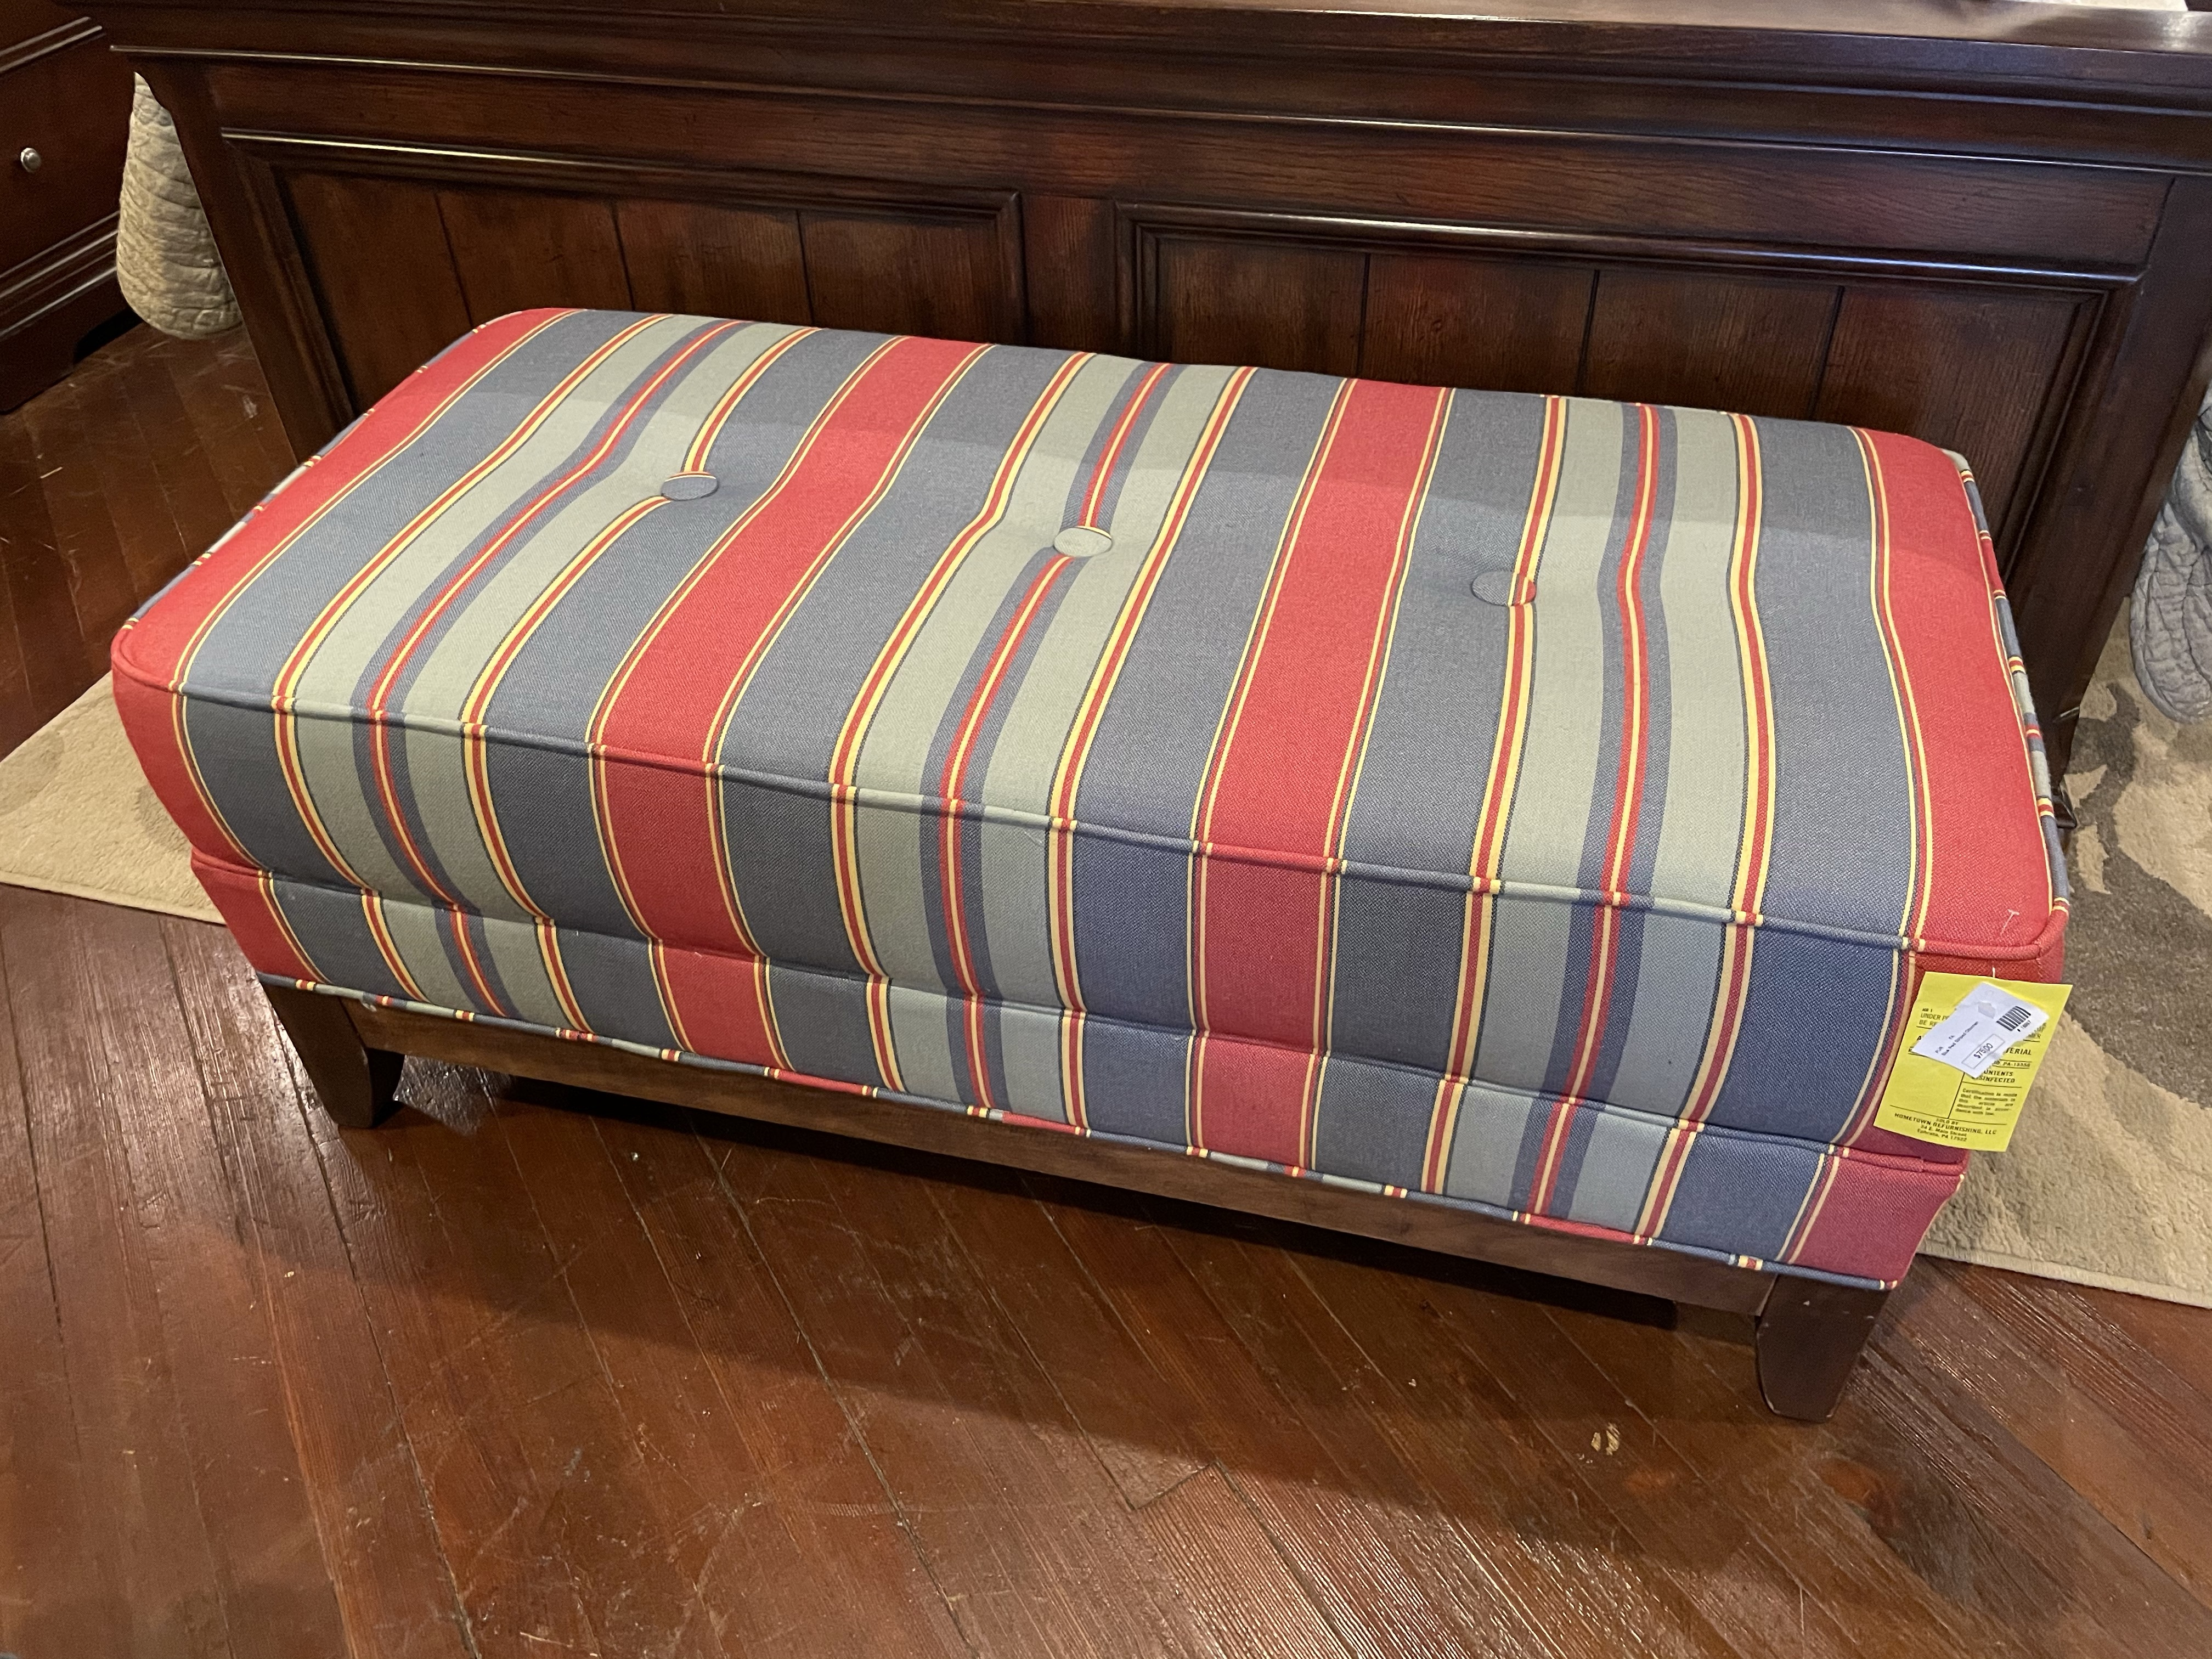 RED & BLUE STRIPED OTTOMAN